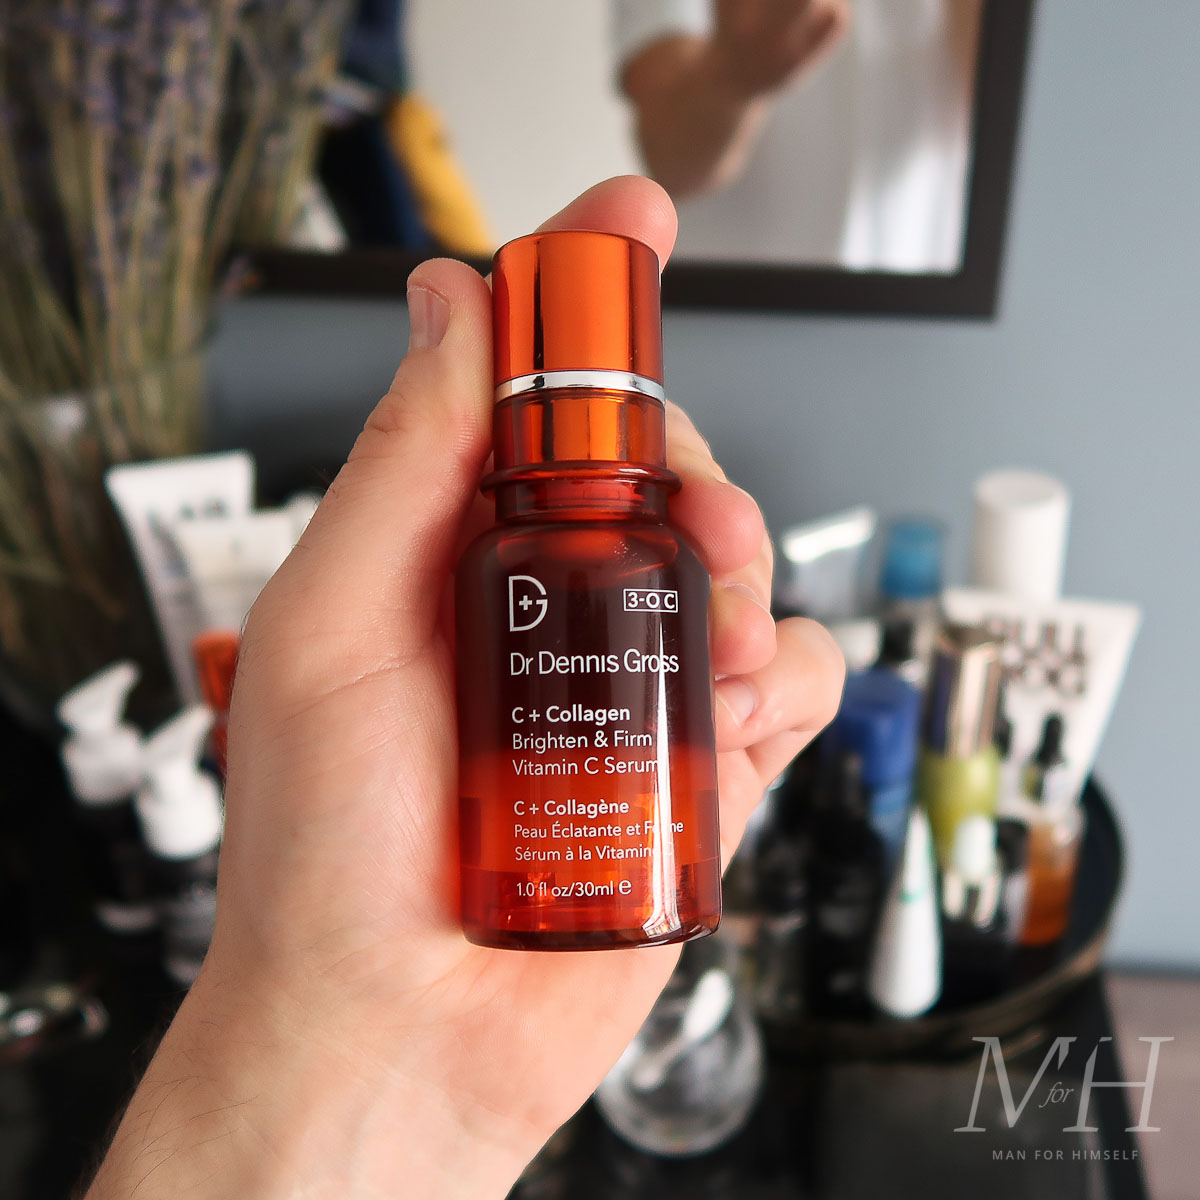 dr-dennis-gross-collagen-brighten-firm-vitaminc-serum-skincare-product-review-man-for-himself